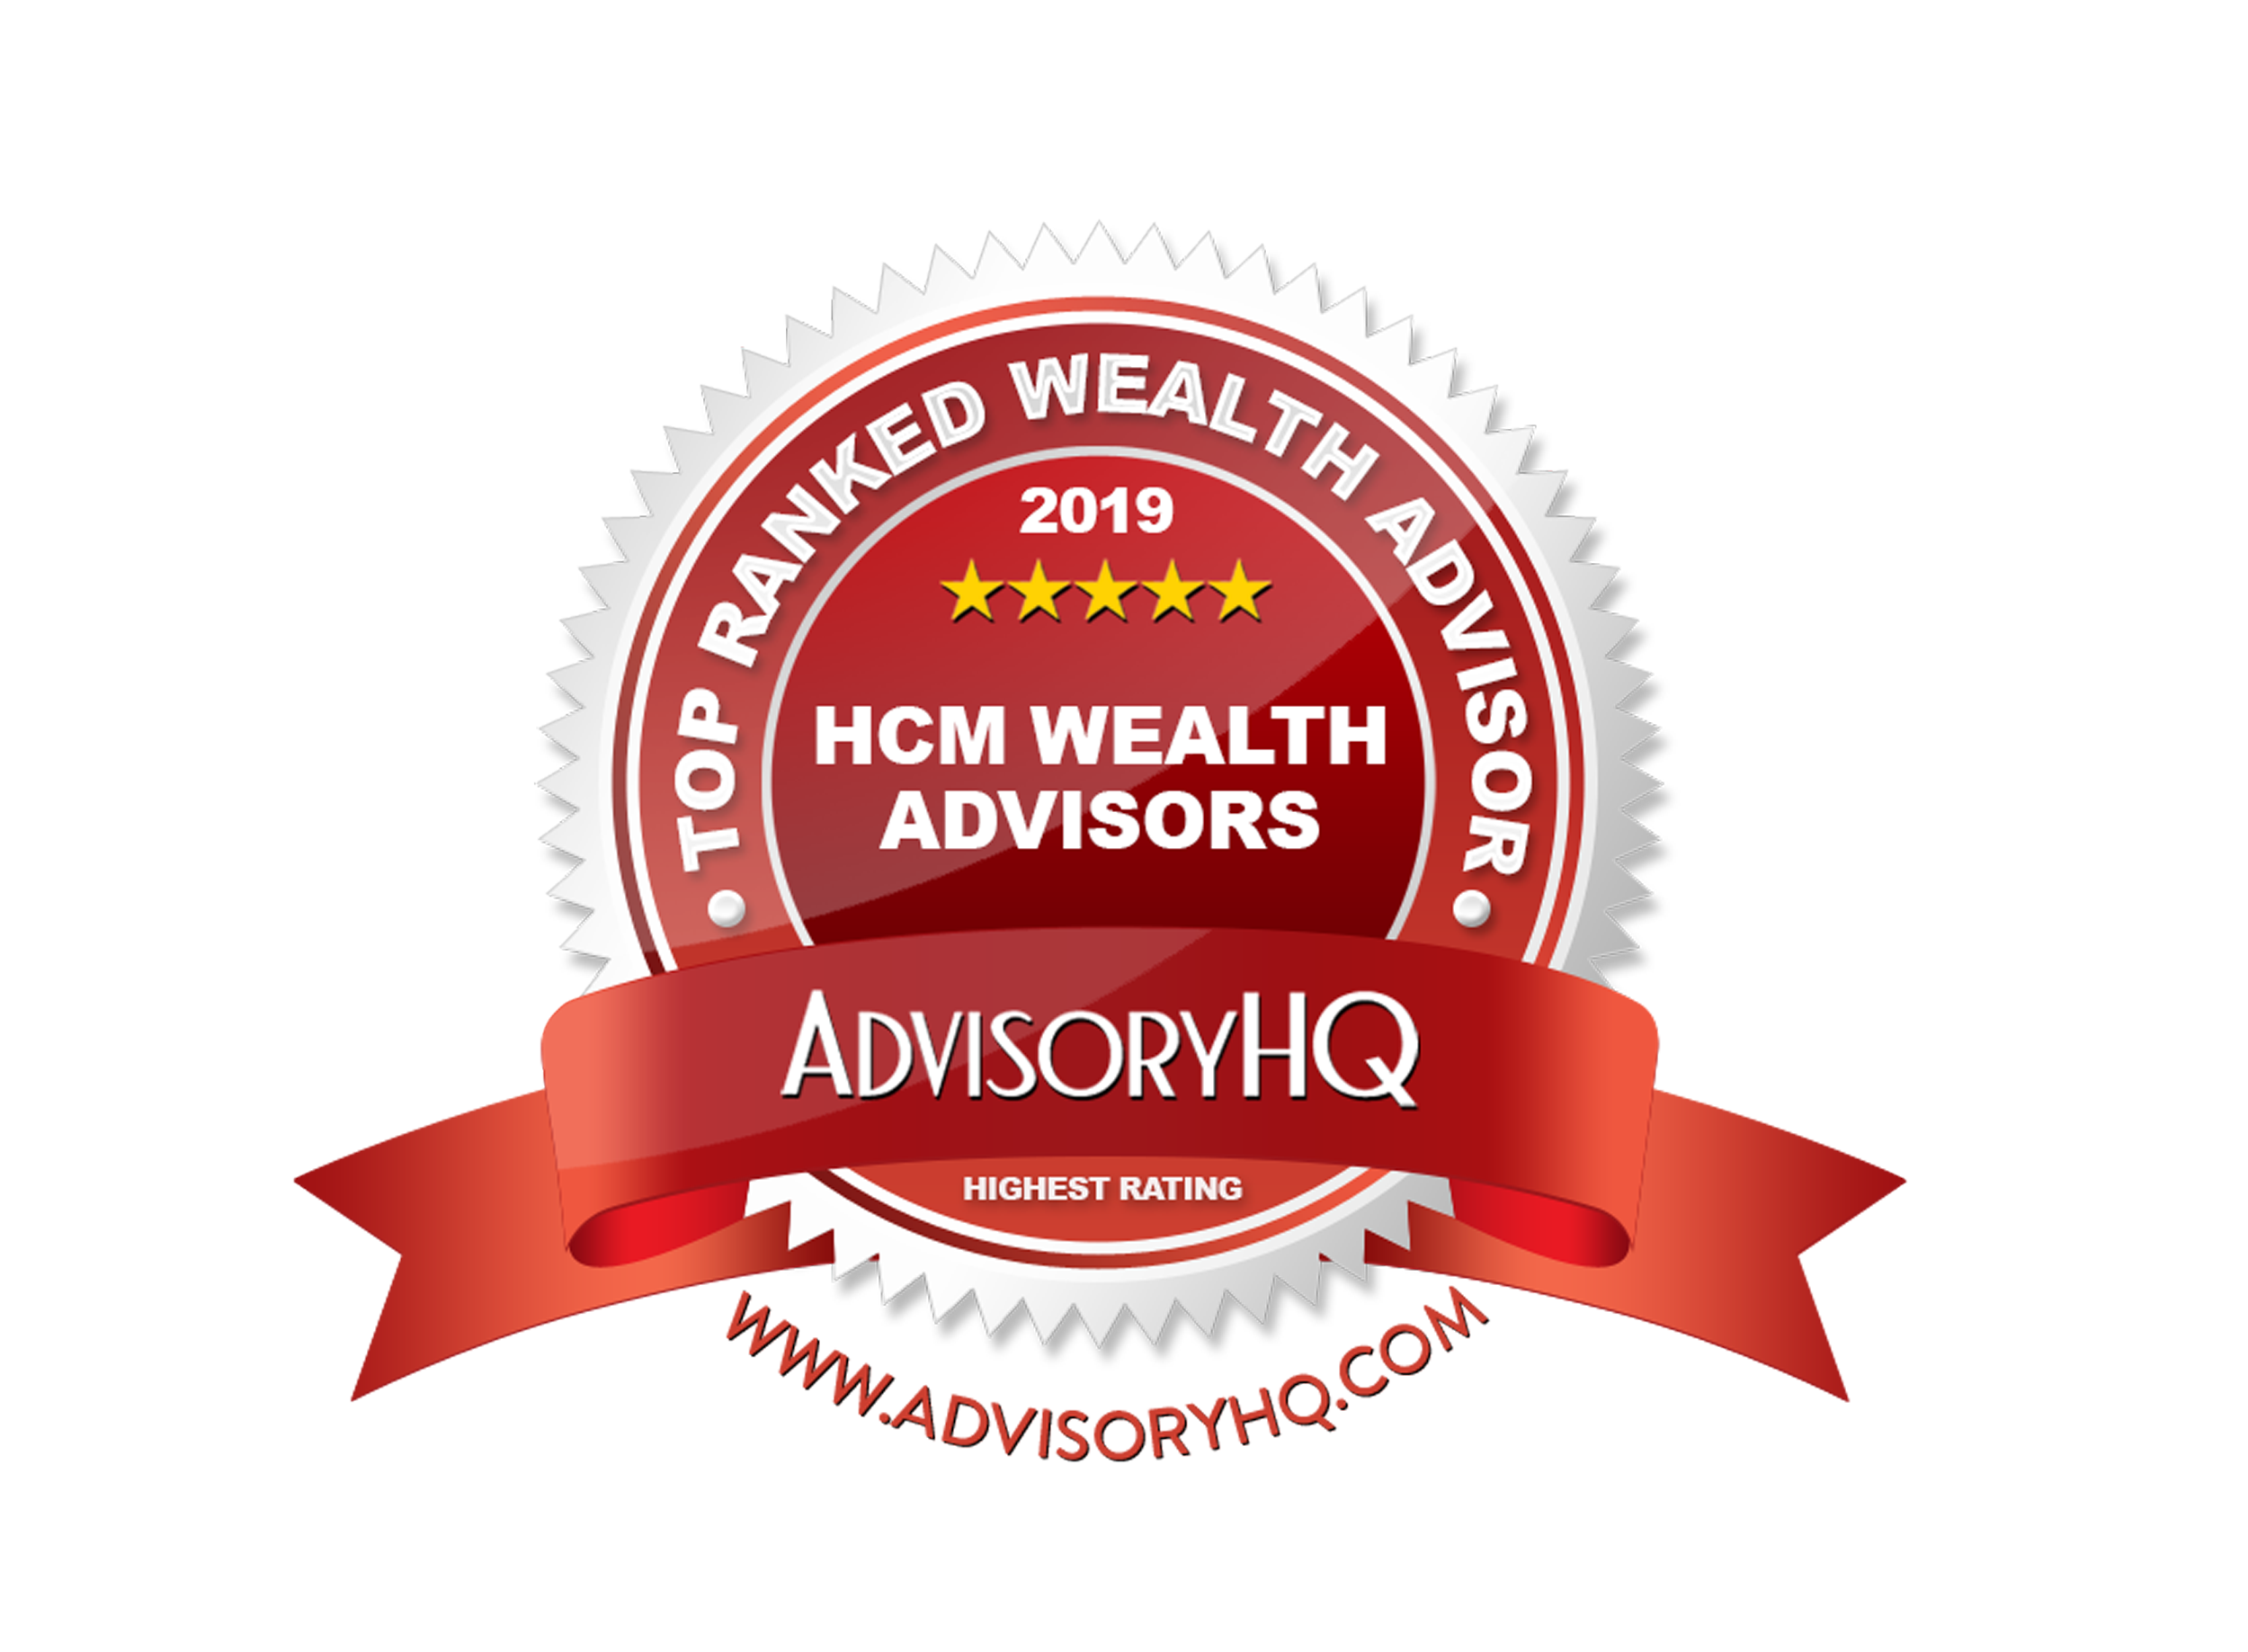 Top Ranked Wealth Advisor HCM Wealth Advisors, Advisory HQ